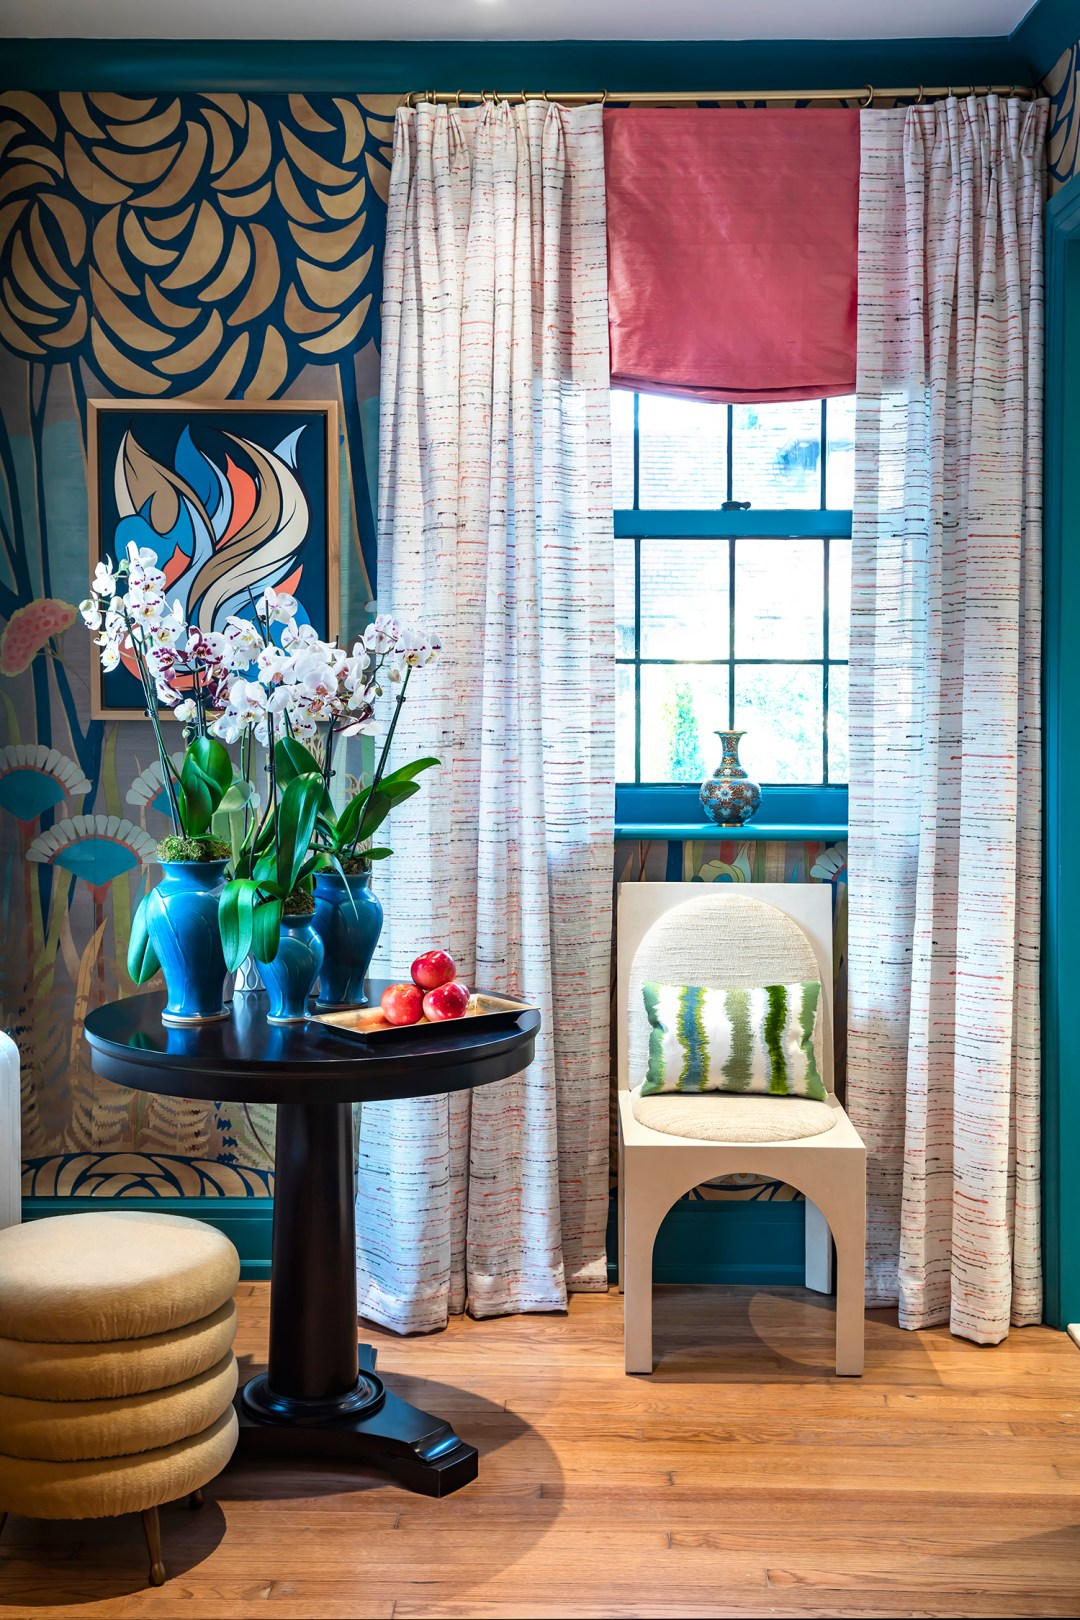 Courtney-McLeod-RMLID-JL-Showhouse_07 Tips for Adding Color and Pattern to a Room from a Louisiana Native